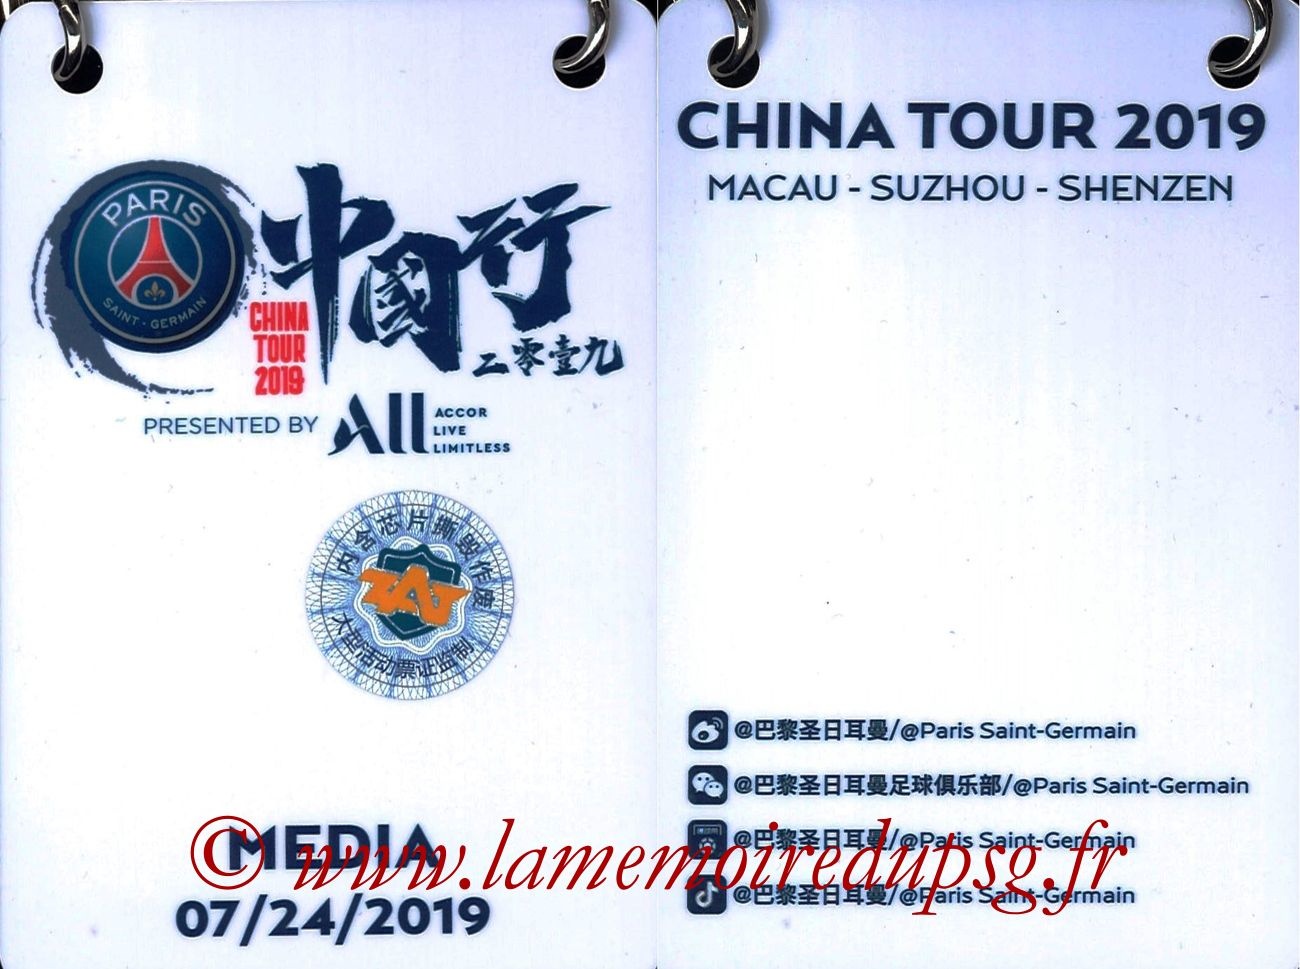 2019-07-24  China Tour 2019 (Badge media)